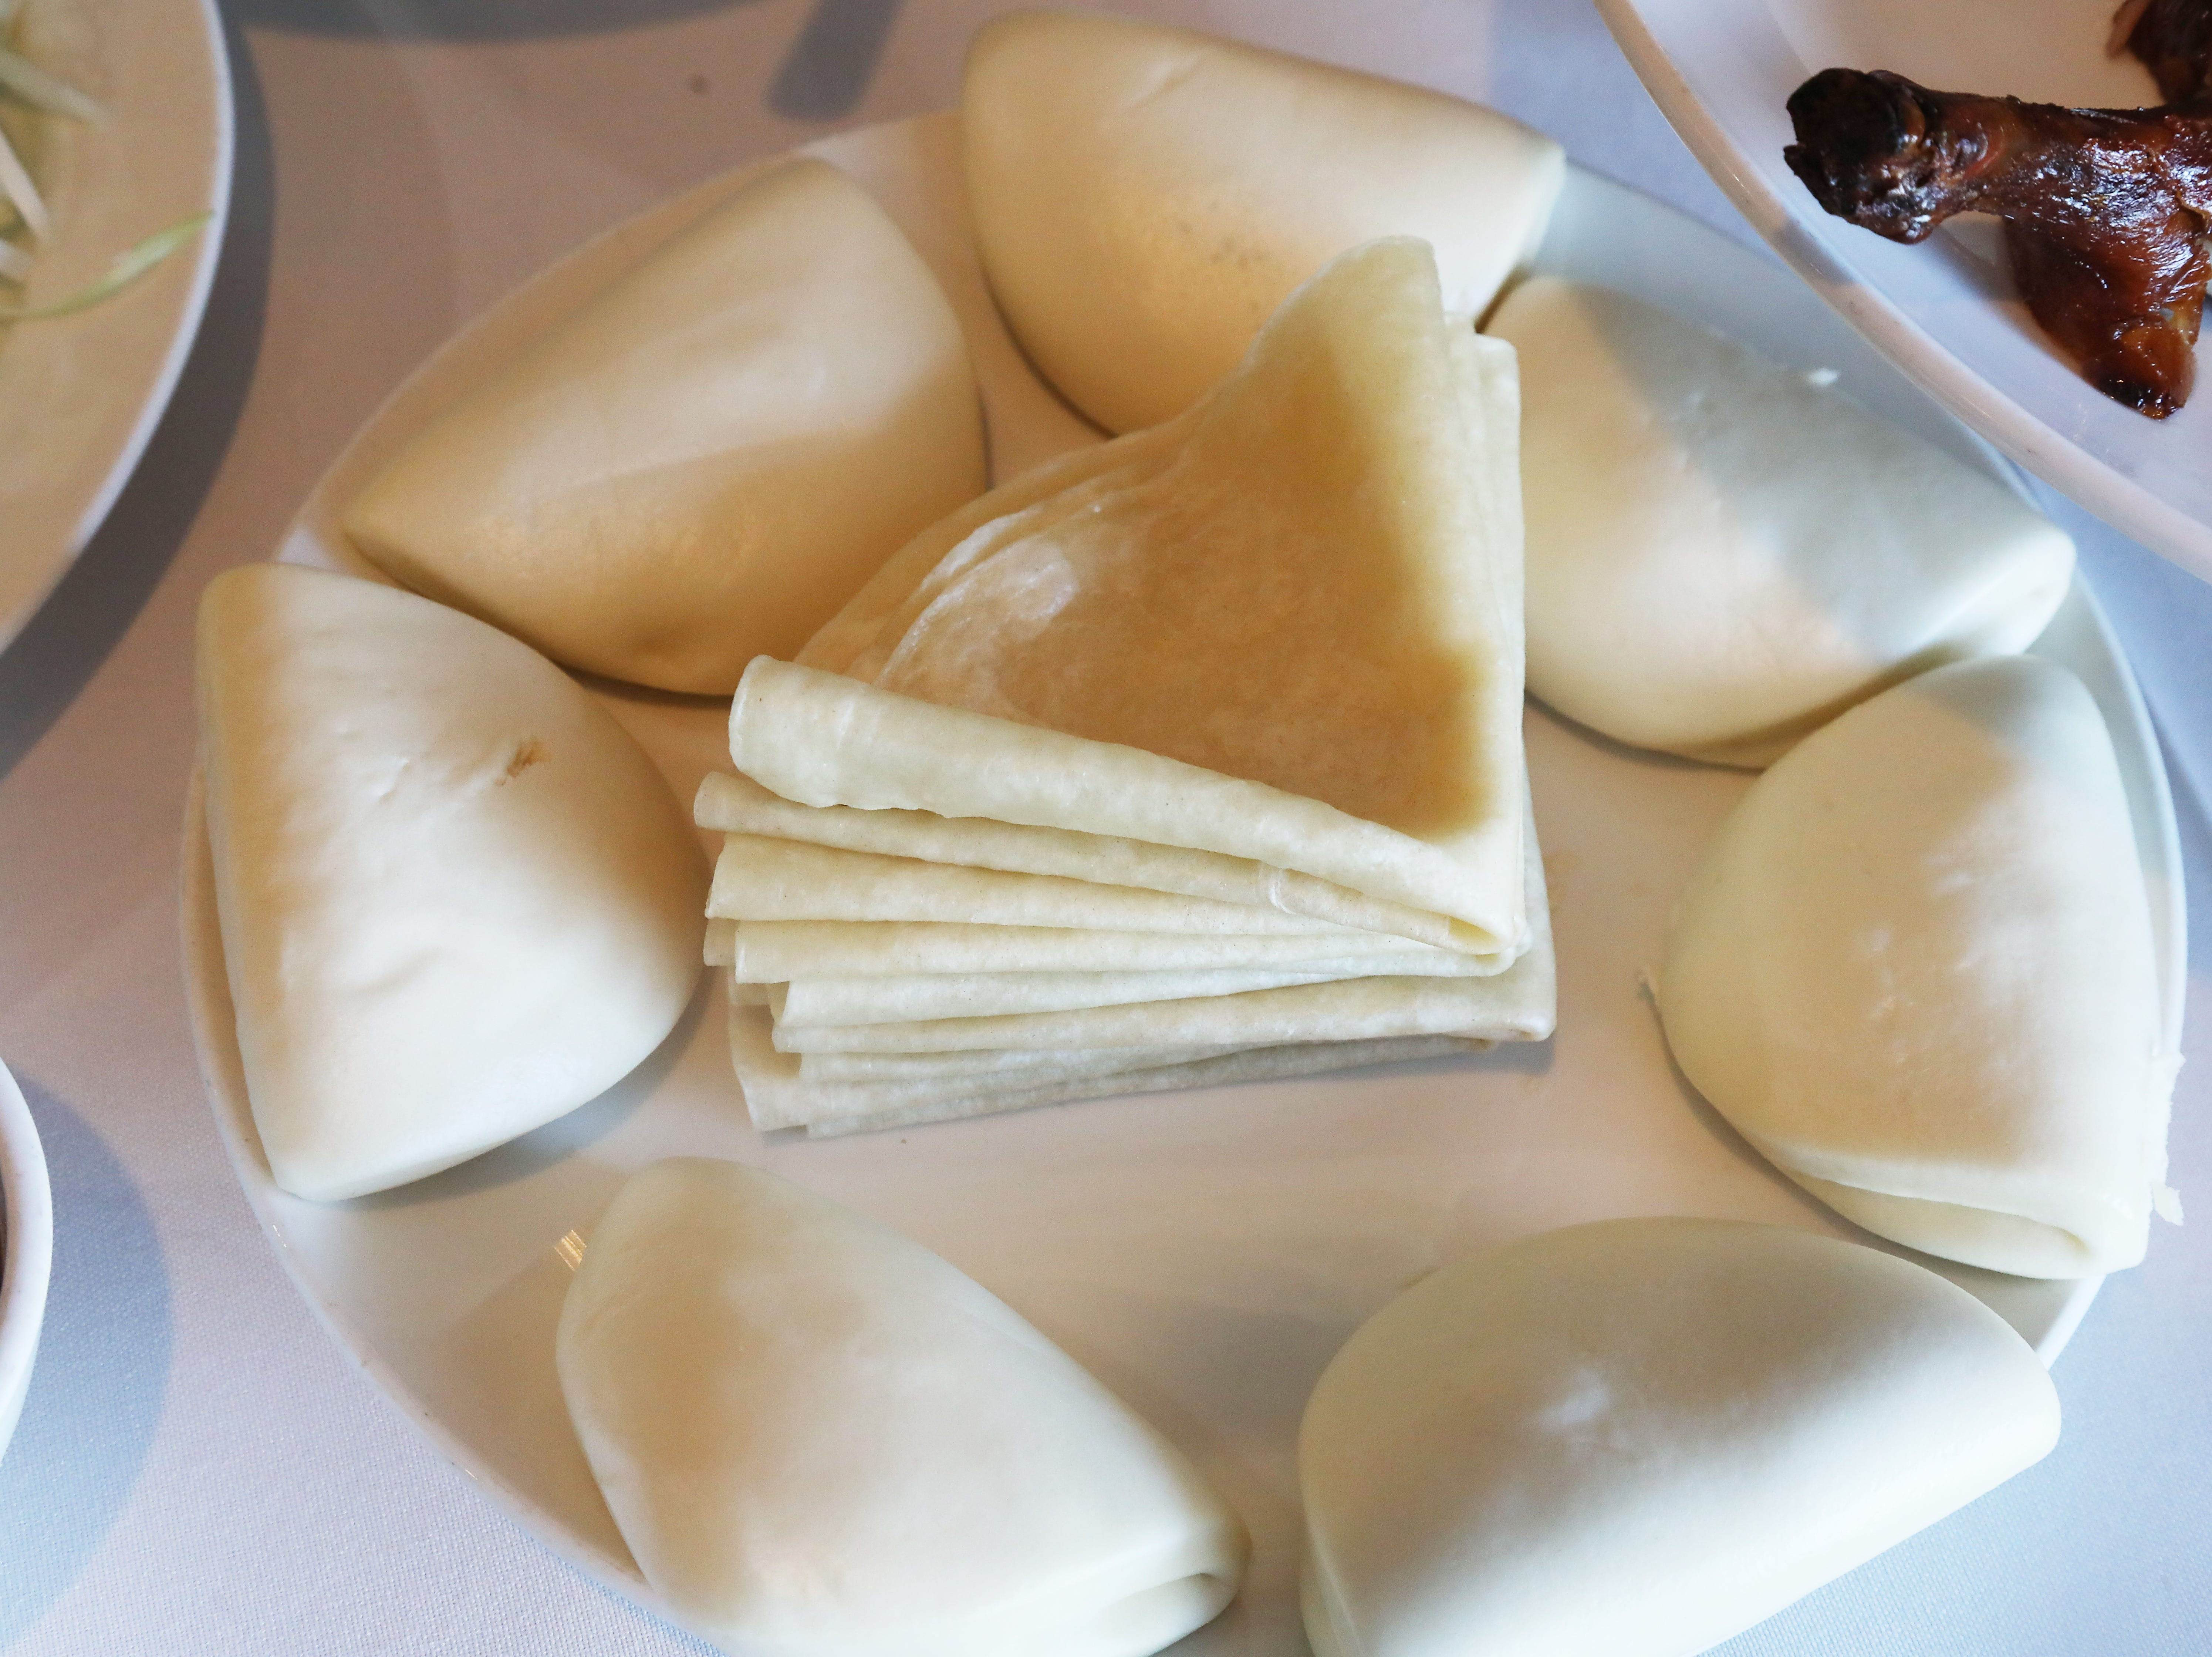 Pancakes and buns that are served so they can be stuffed with Beijing duck at Jasper Restaurant.